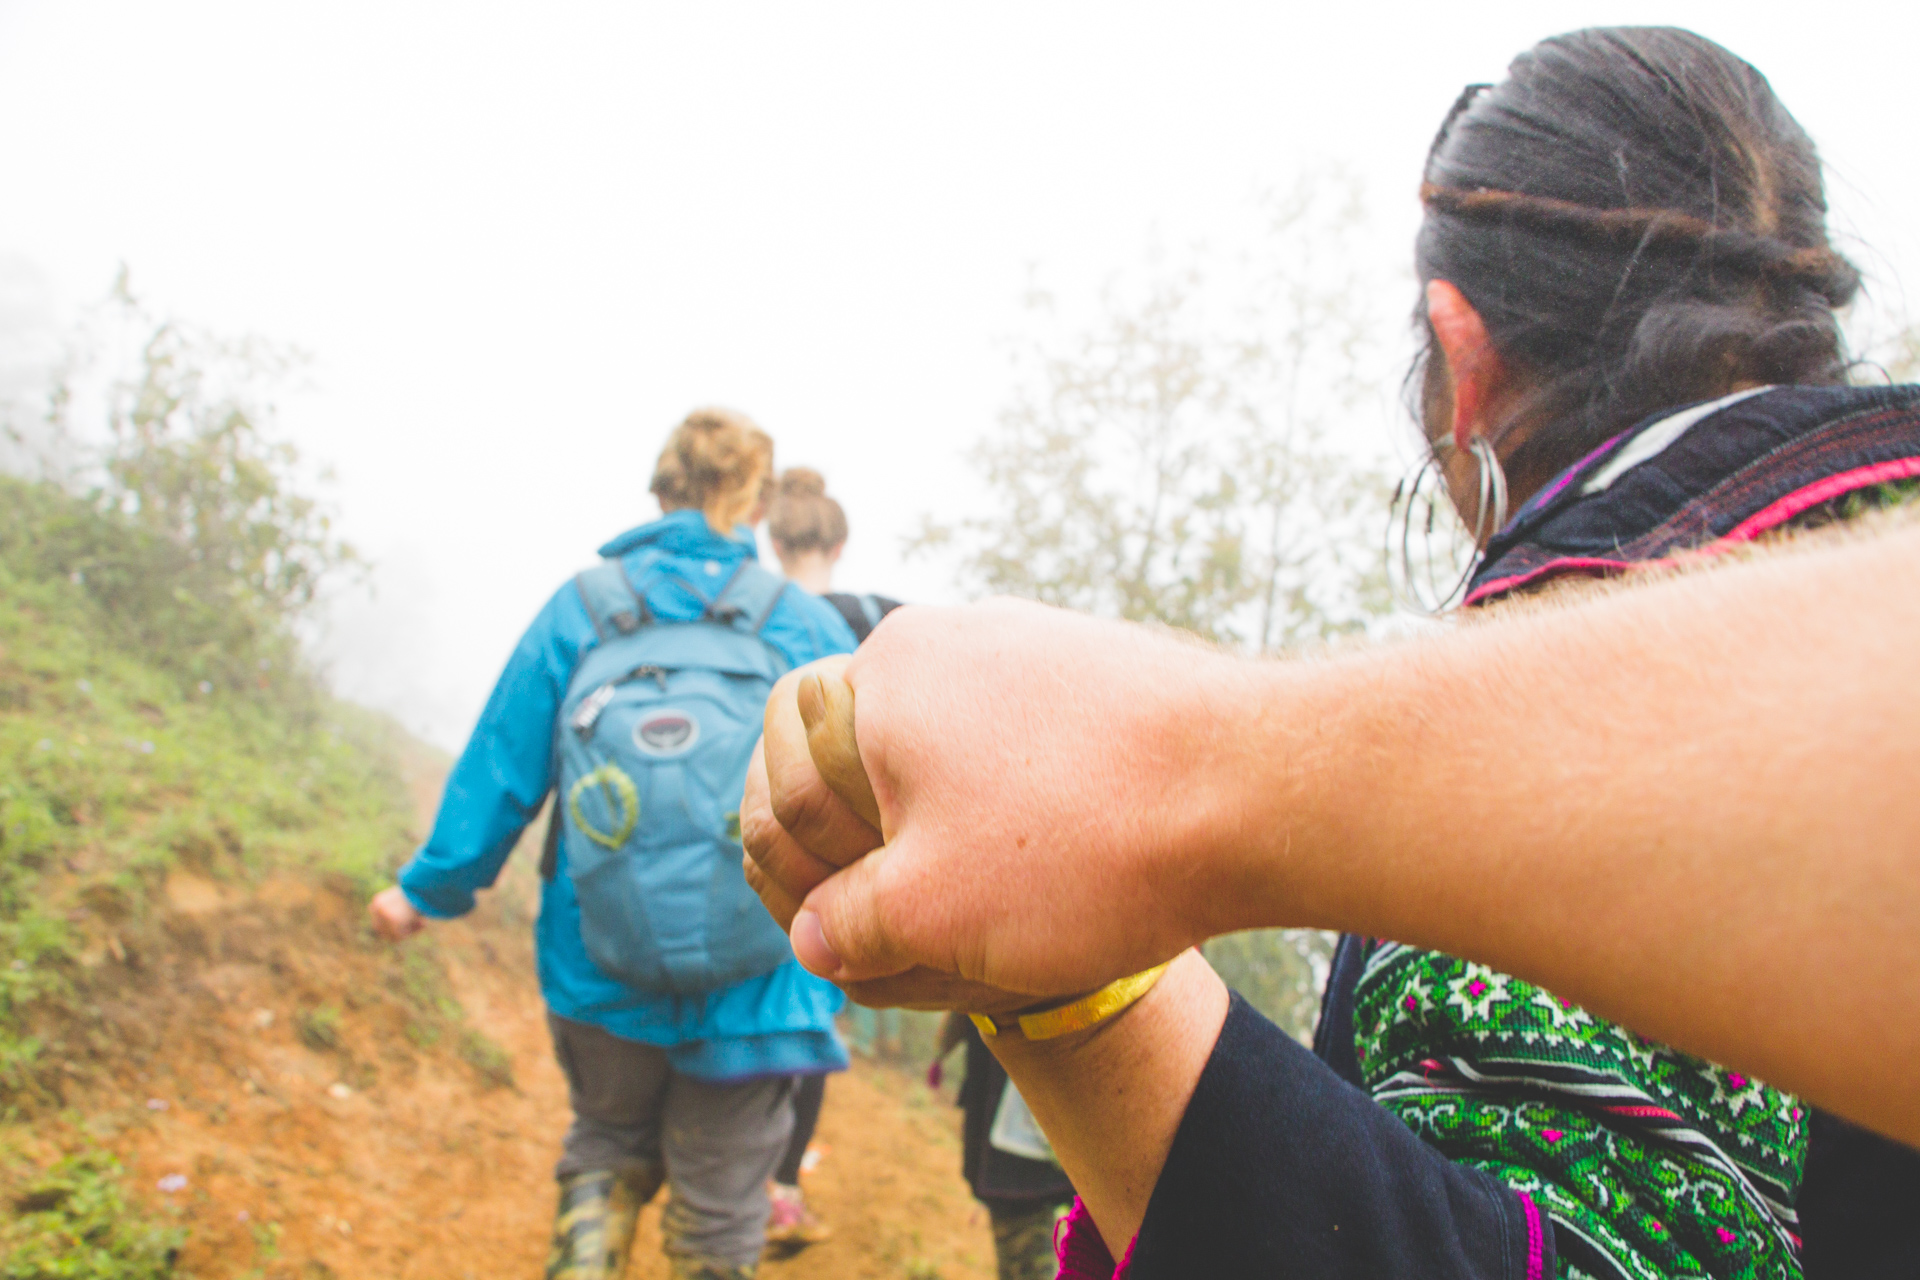 Sapa villager holding hand on way down